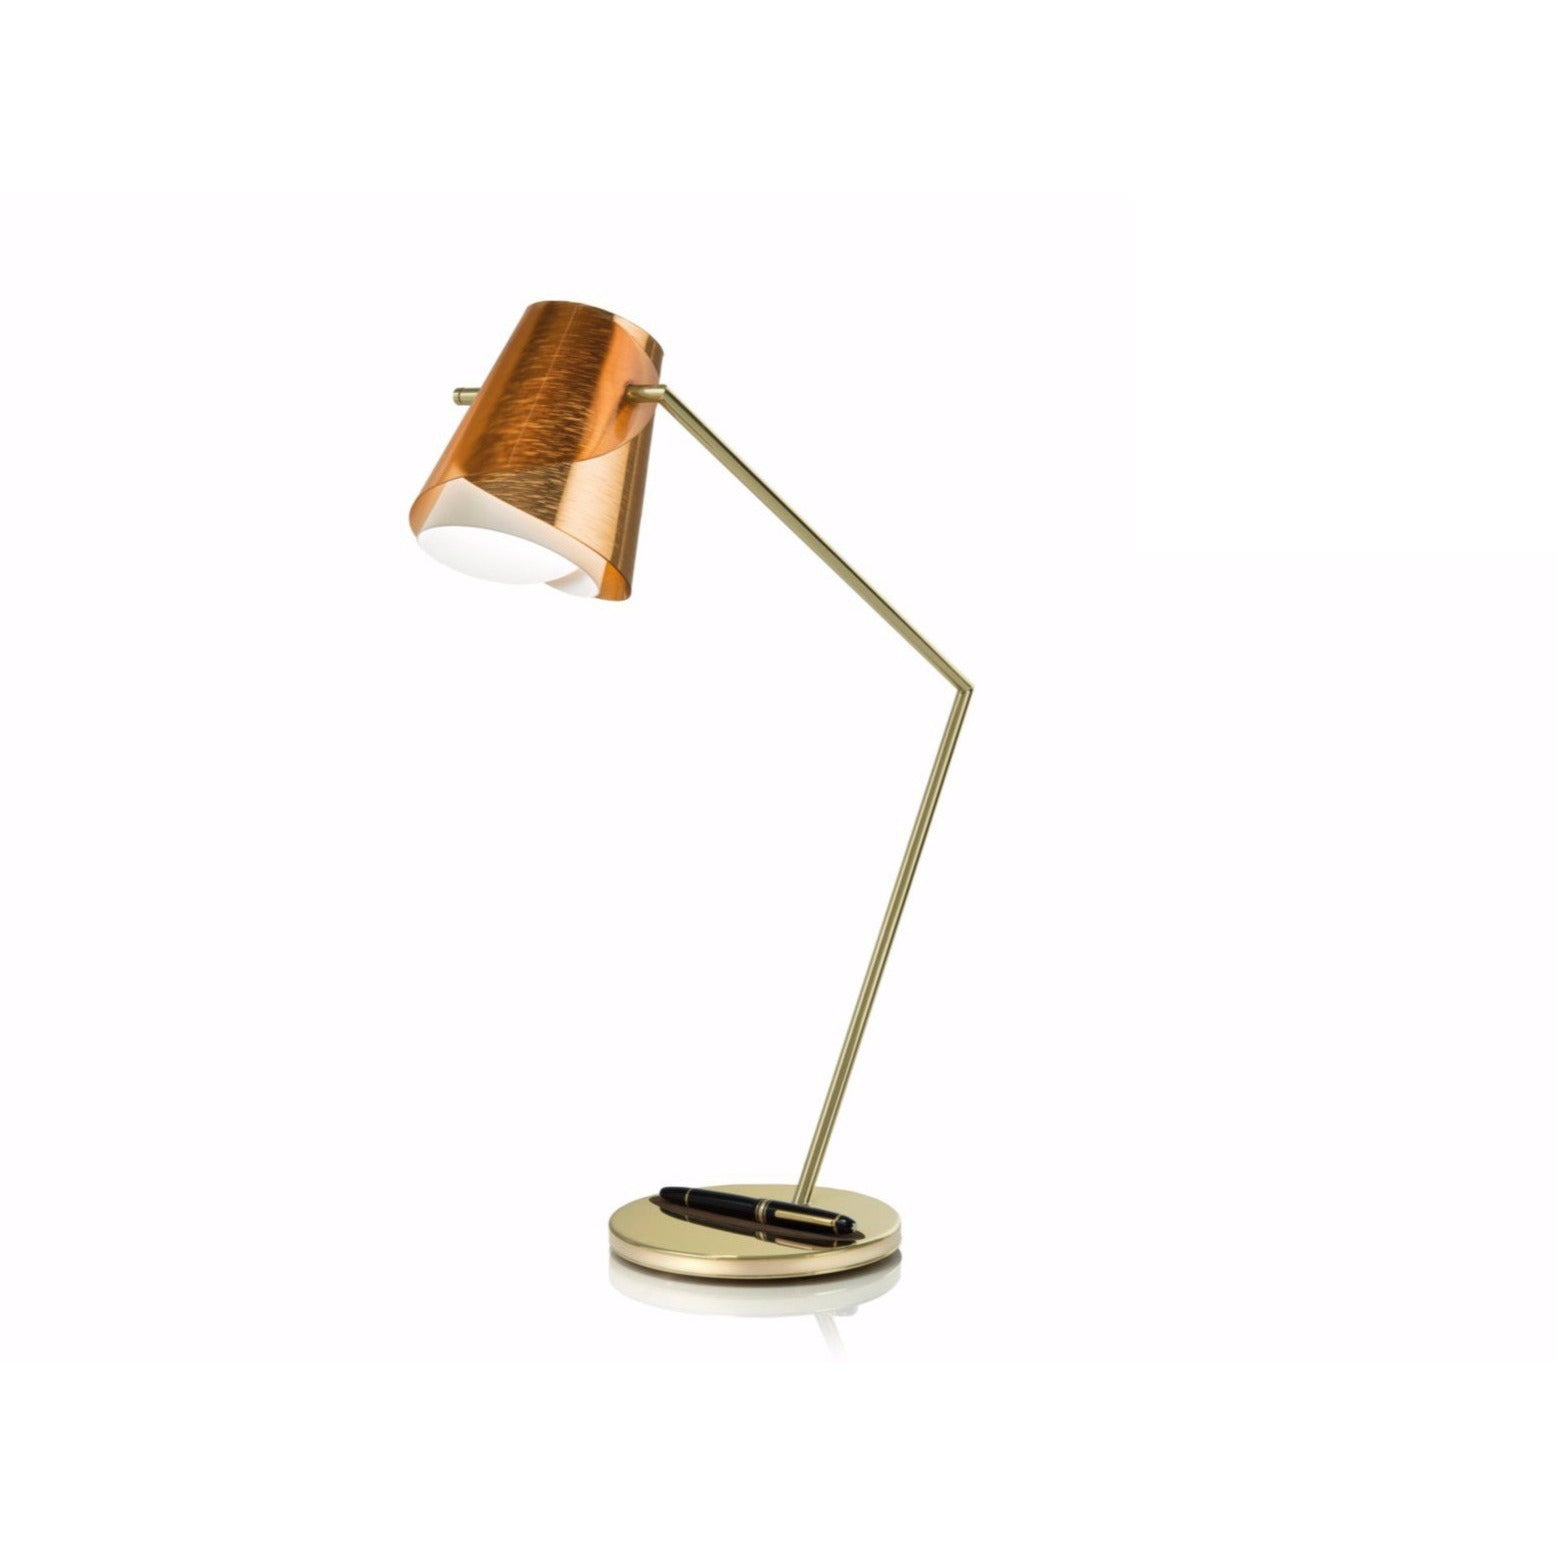 SLAMP - OVE94TAV0000RA000 - Table Lamp - Overlay - Copper/Brassed